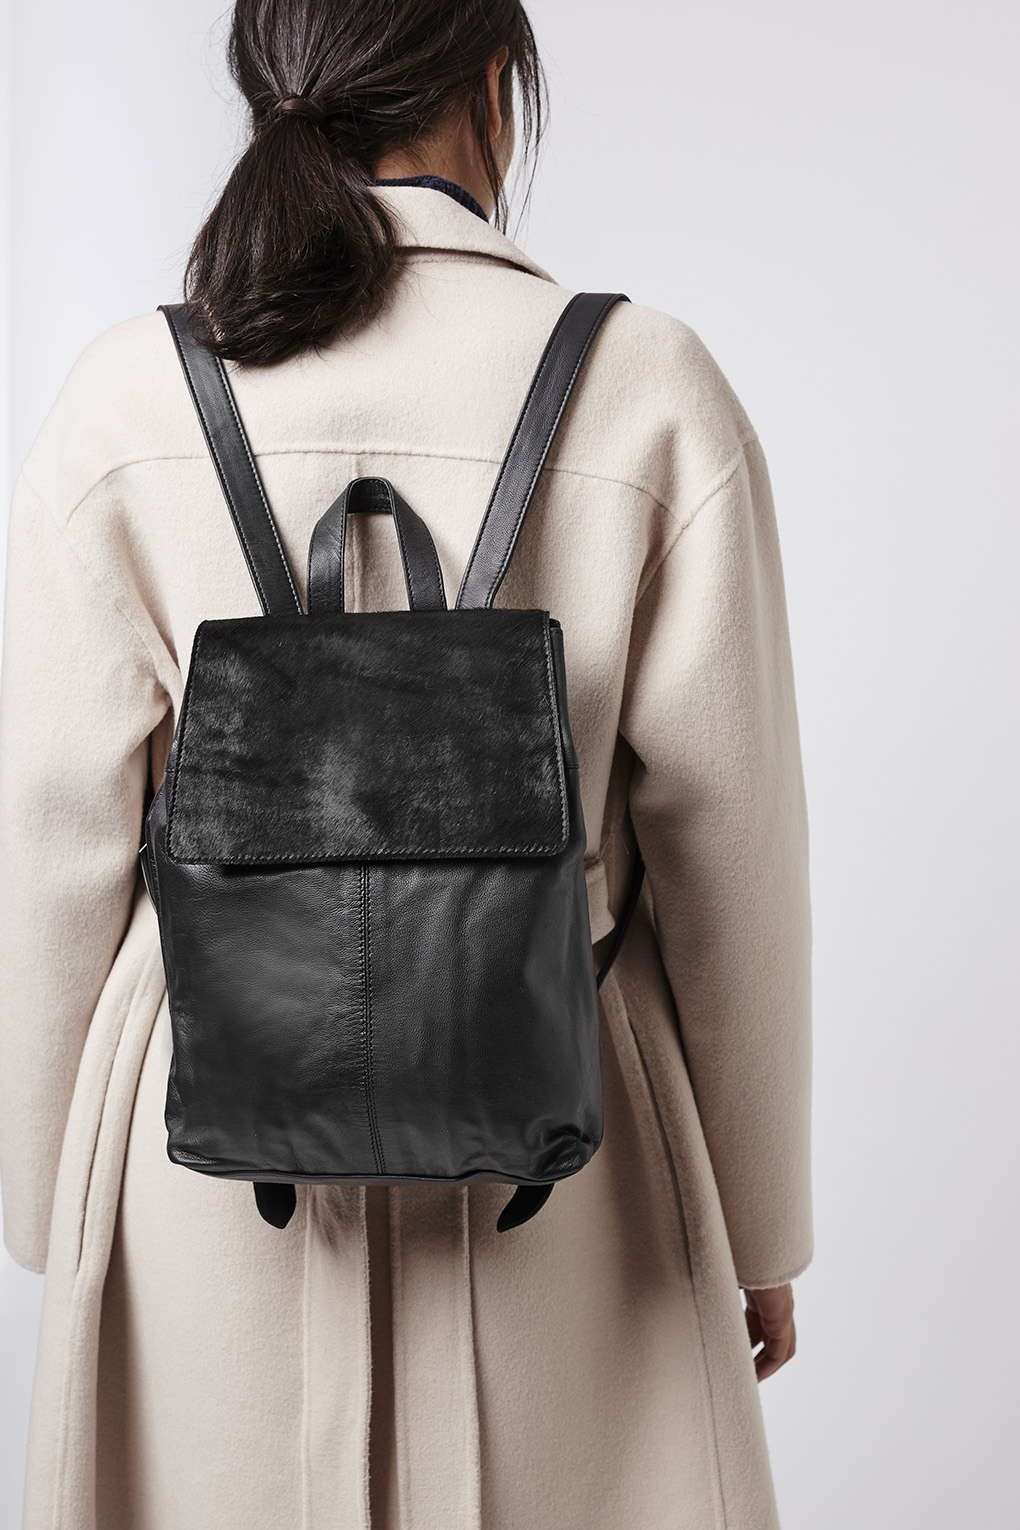 Leather Ponyhair Backpack - Bags & Wallets - Bags & Accessories ...